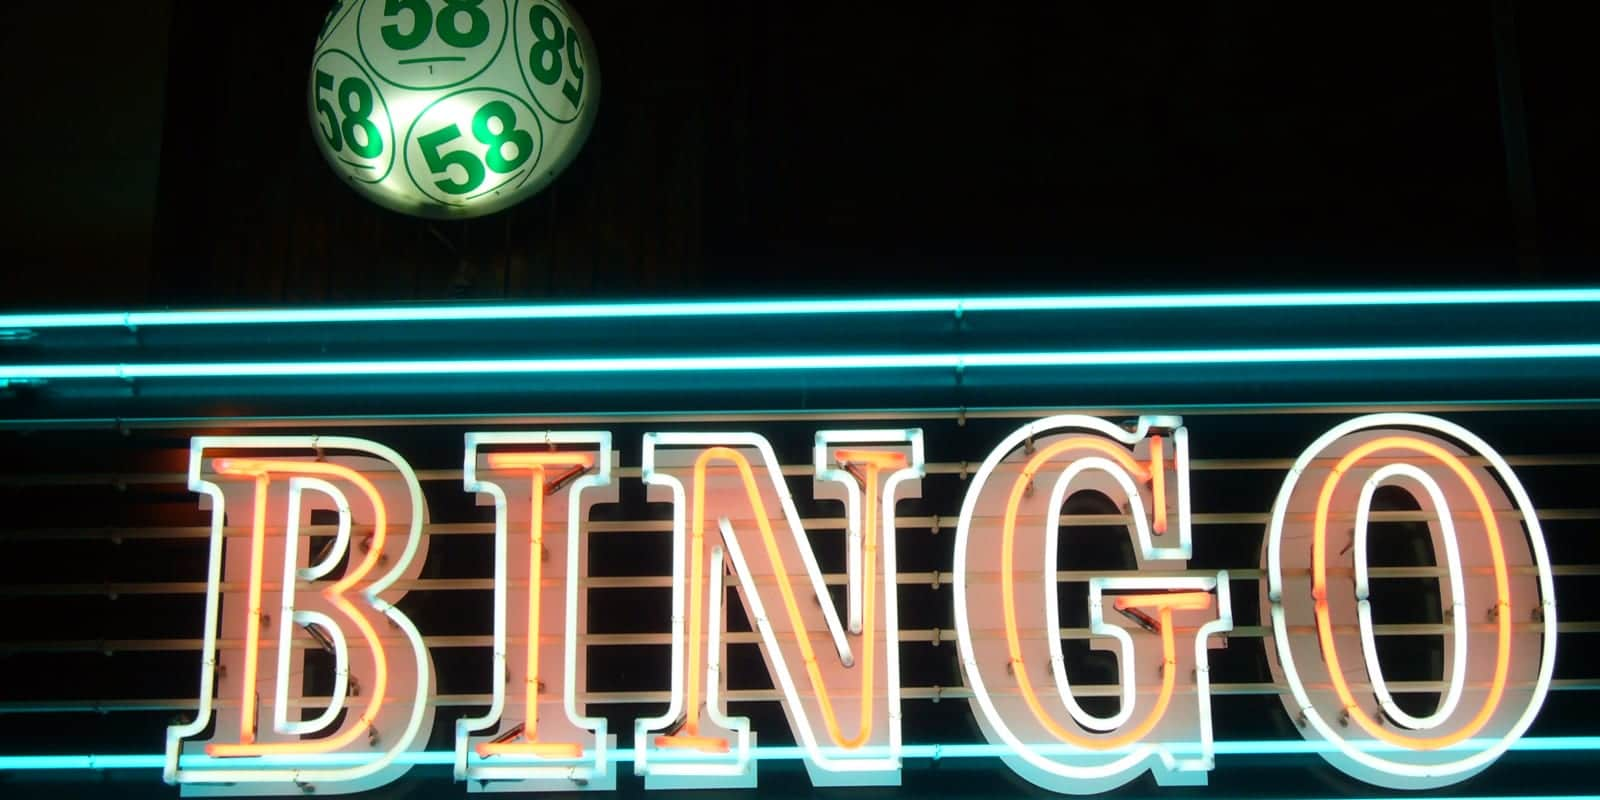 Bingo Ball Neon Light